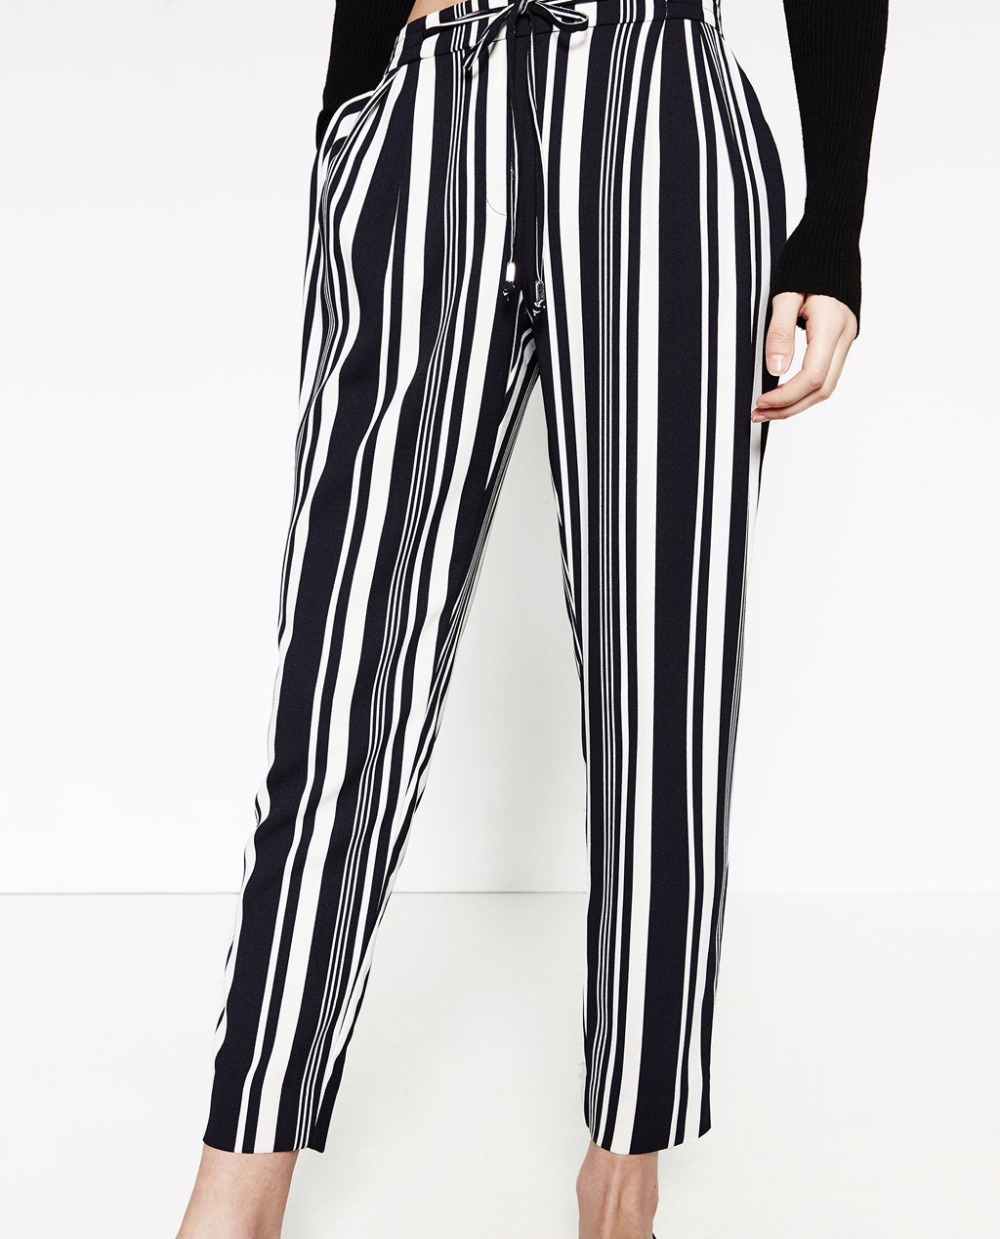 Shop fashion black white striped shirt walmart sale online at Twinkledeals. Search the latest black white striped shirt walmart with affordable price and free shipping available worldwide.